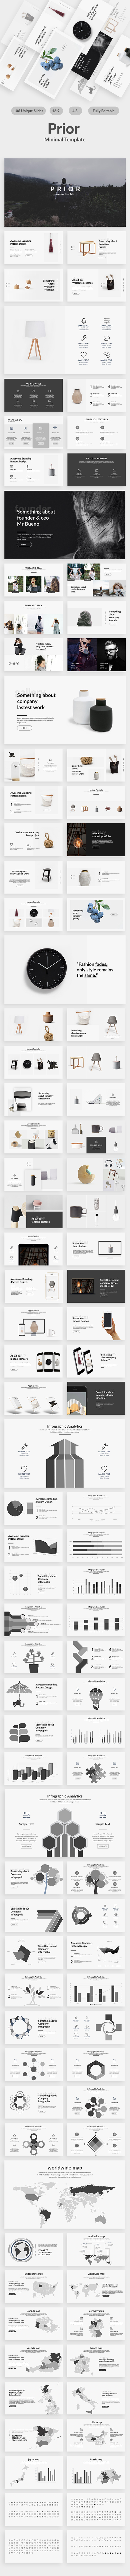 Prior Minimal Powerpoint Template - Creative PowerPoint Templates